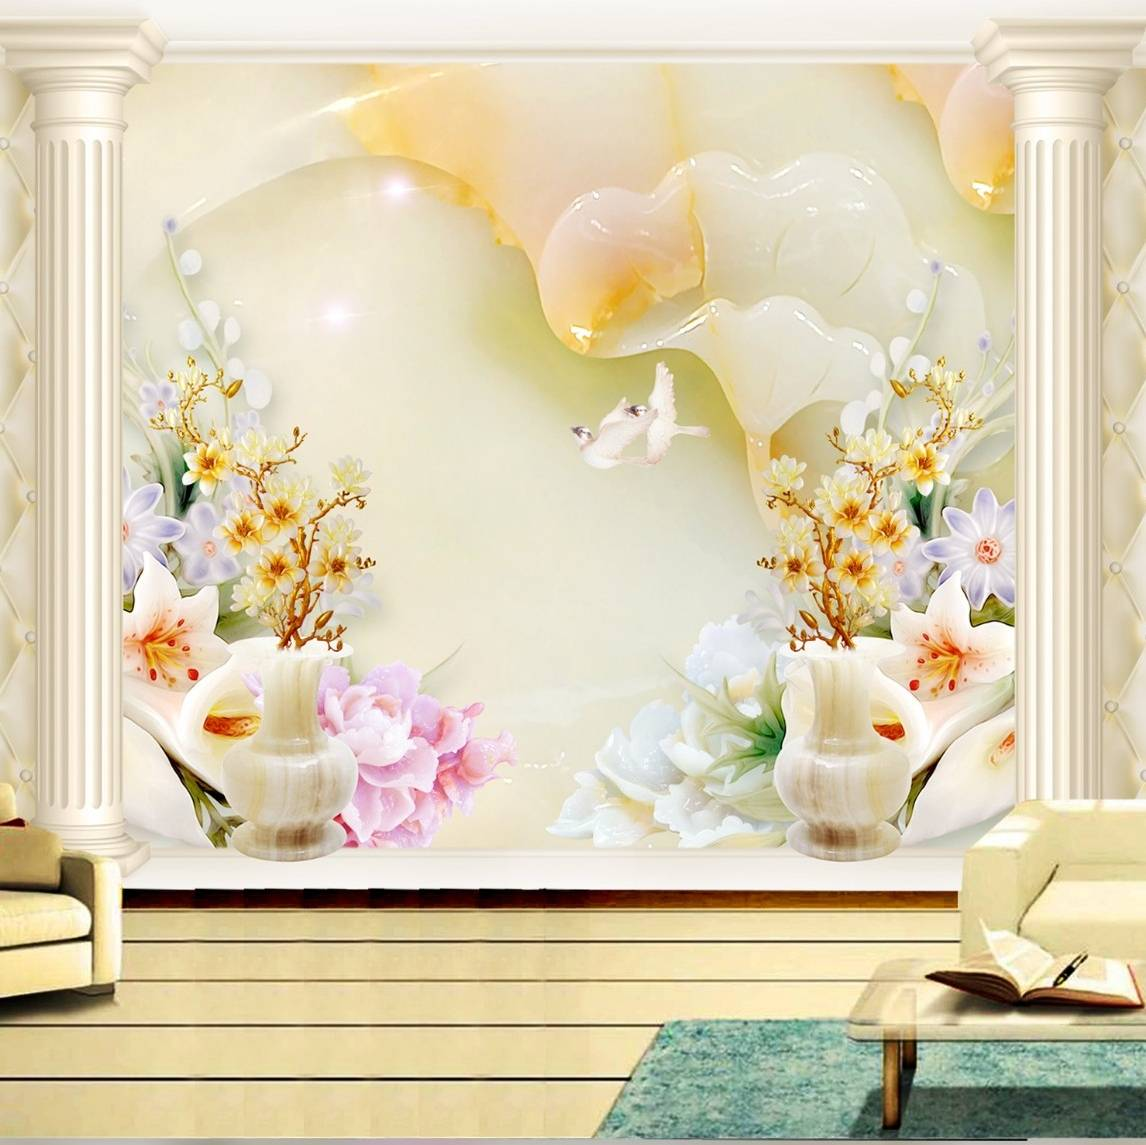 Wallpaper Custom Wallpaper 3d Wallpaper Dinding Bunga Flower